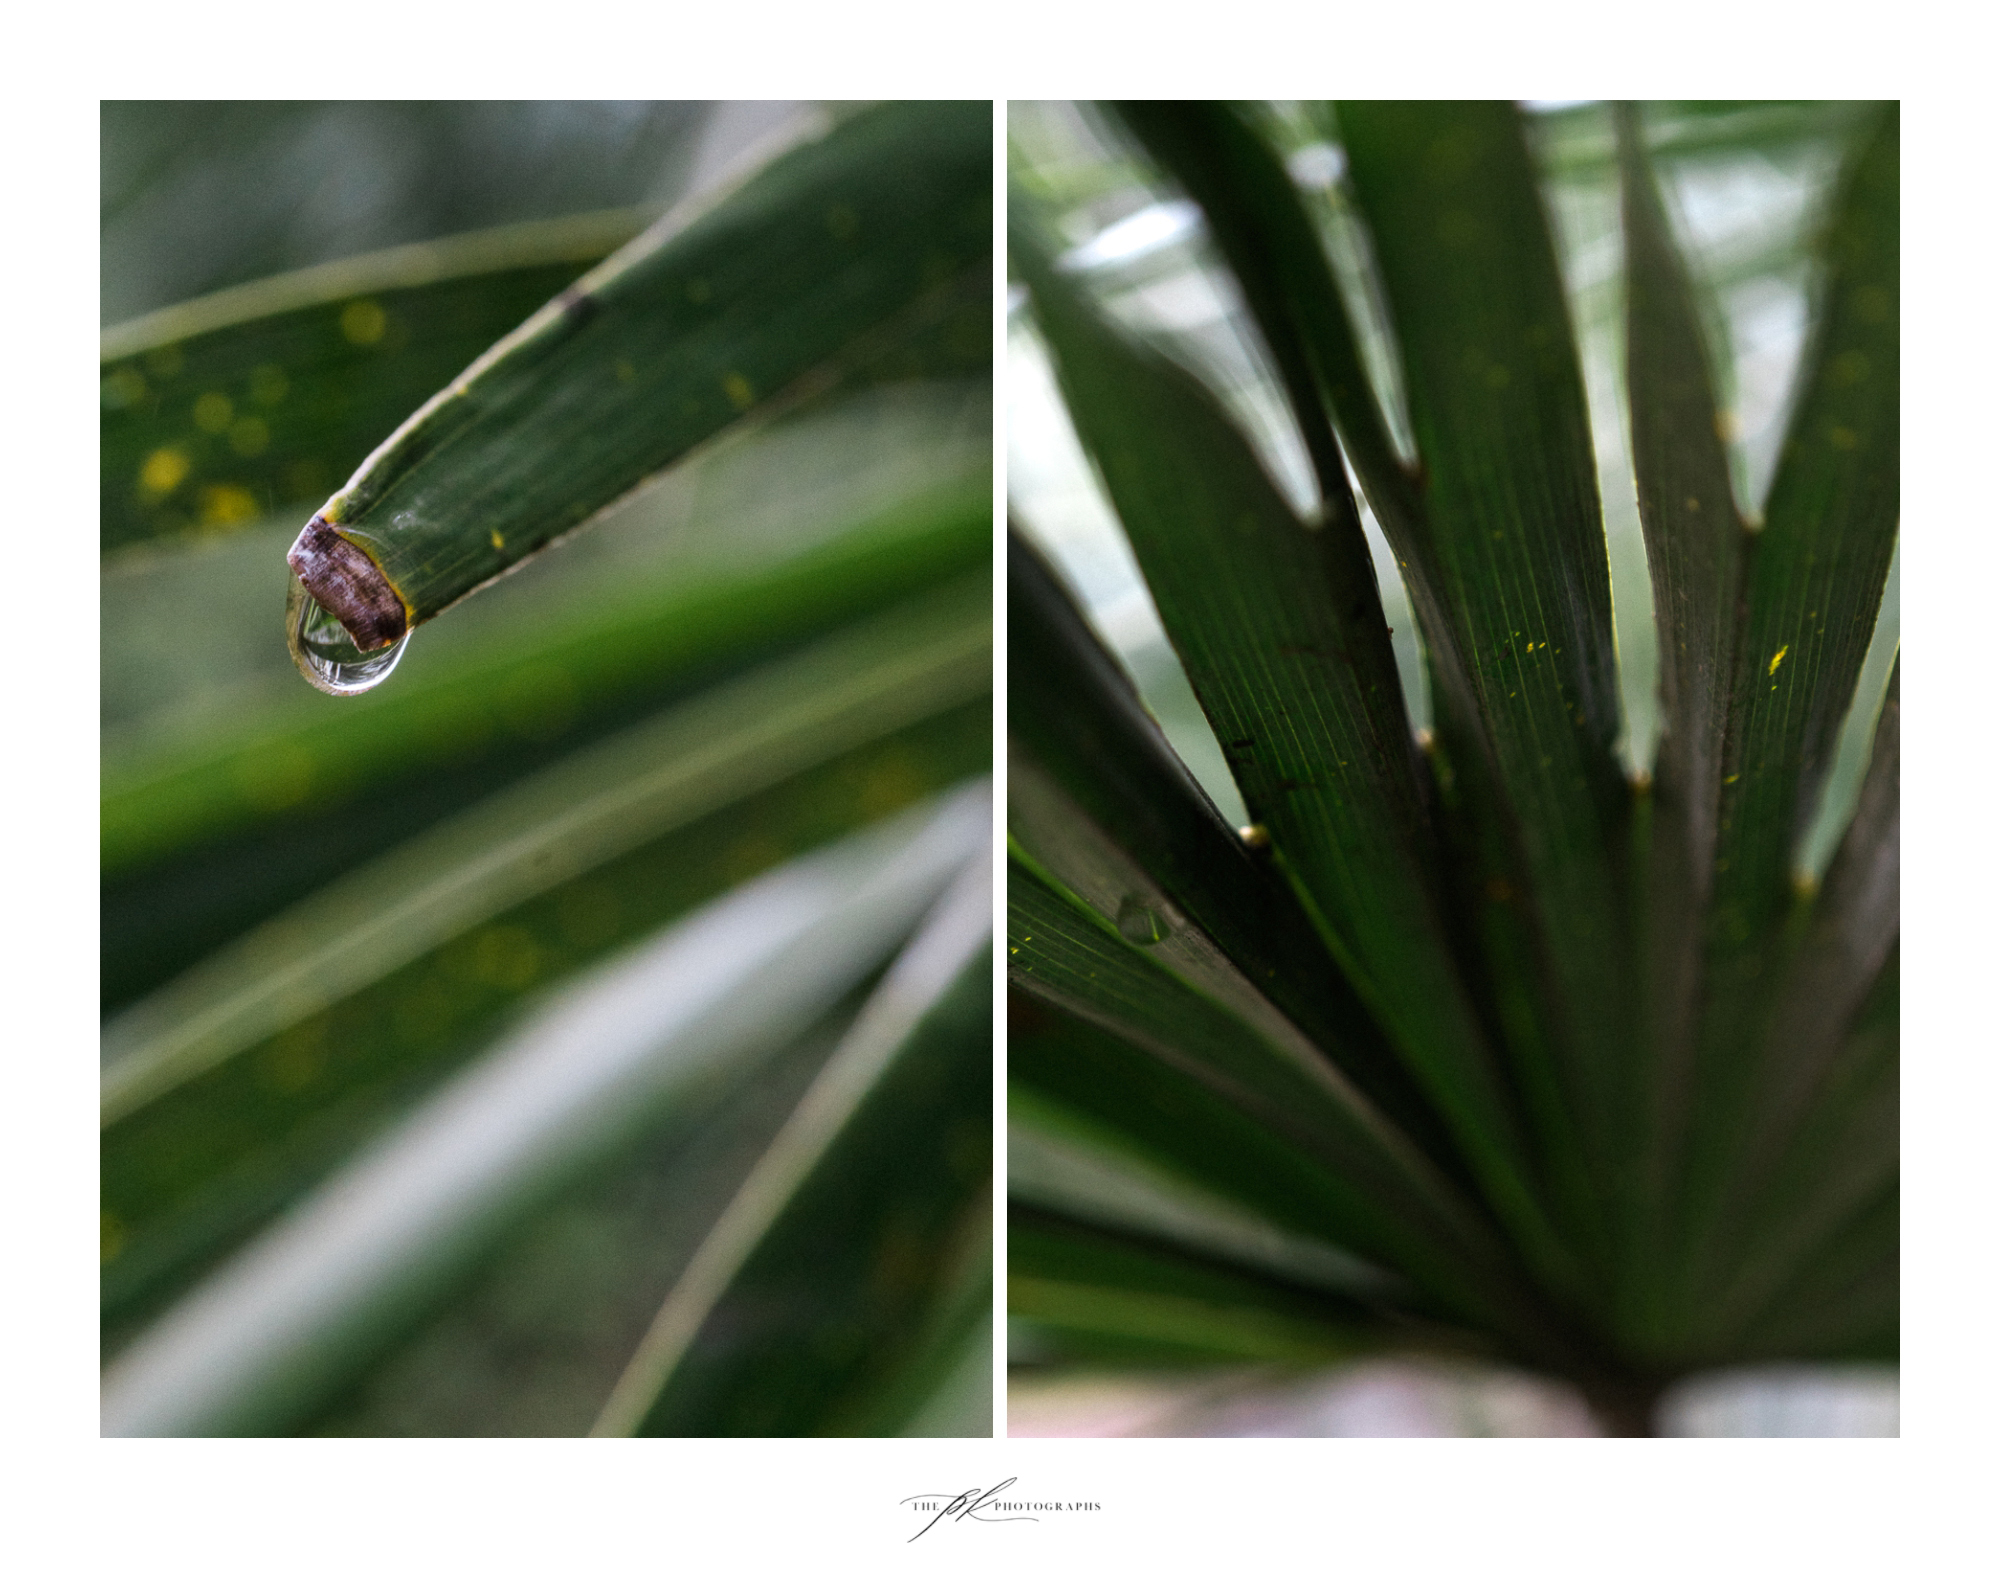 palm-tree-water-drop-leaf-up-close.jpg